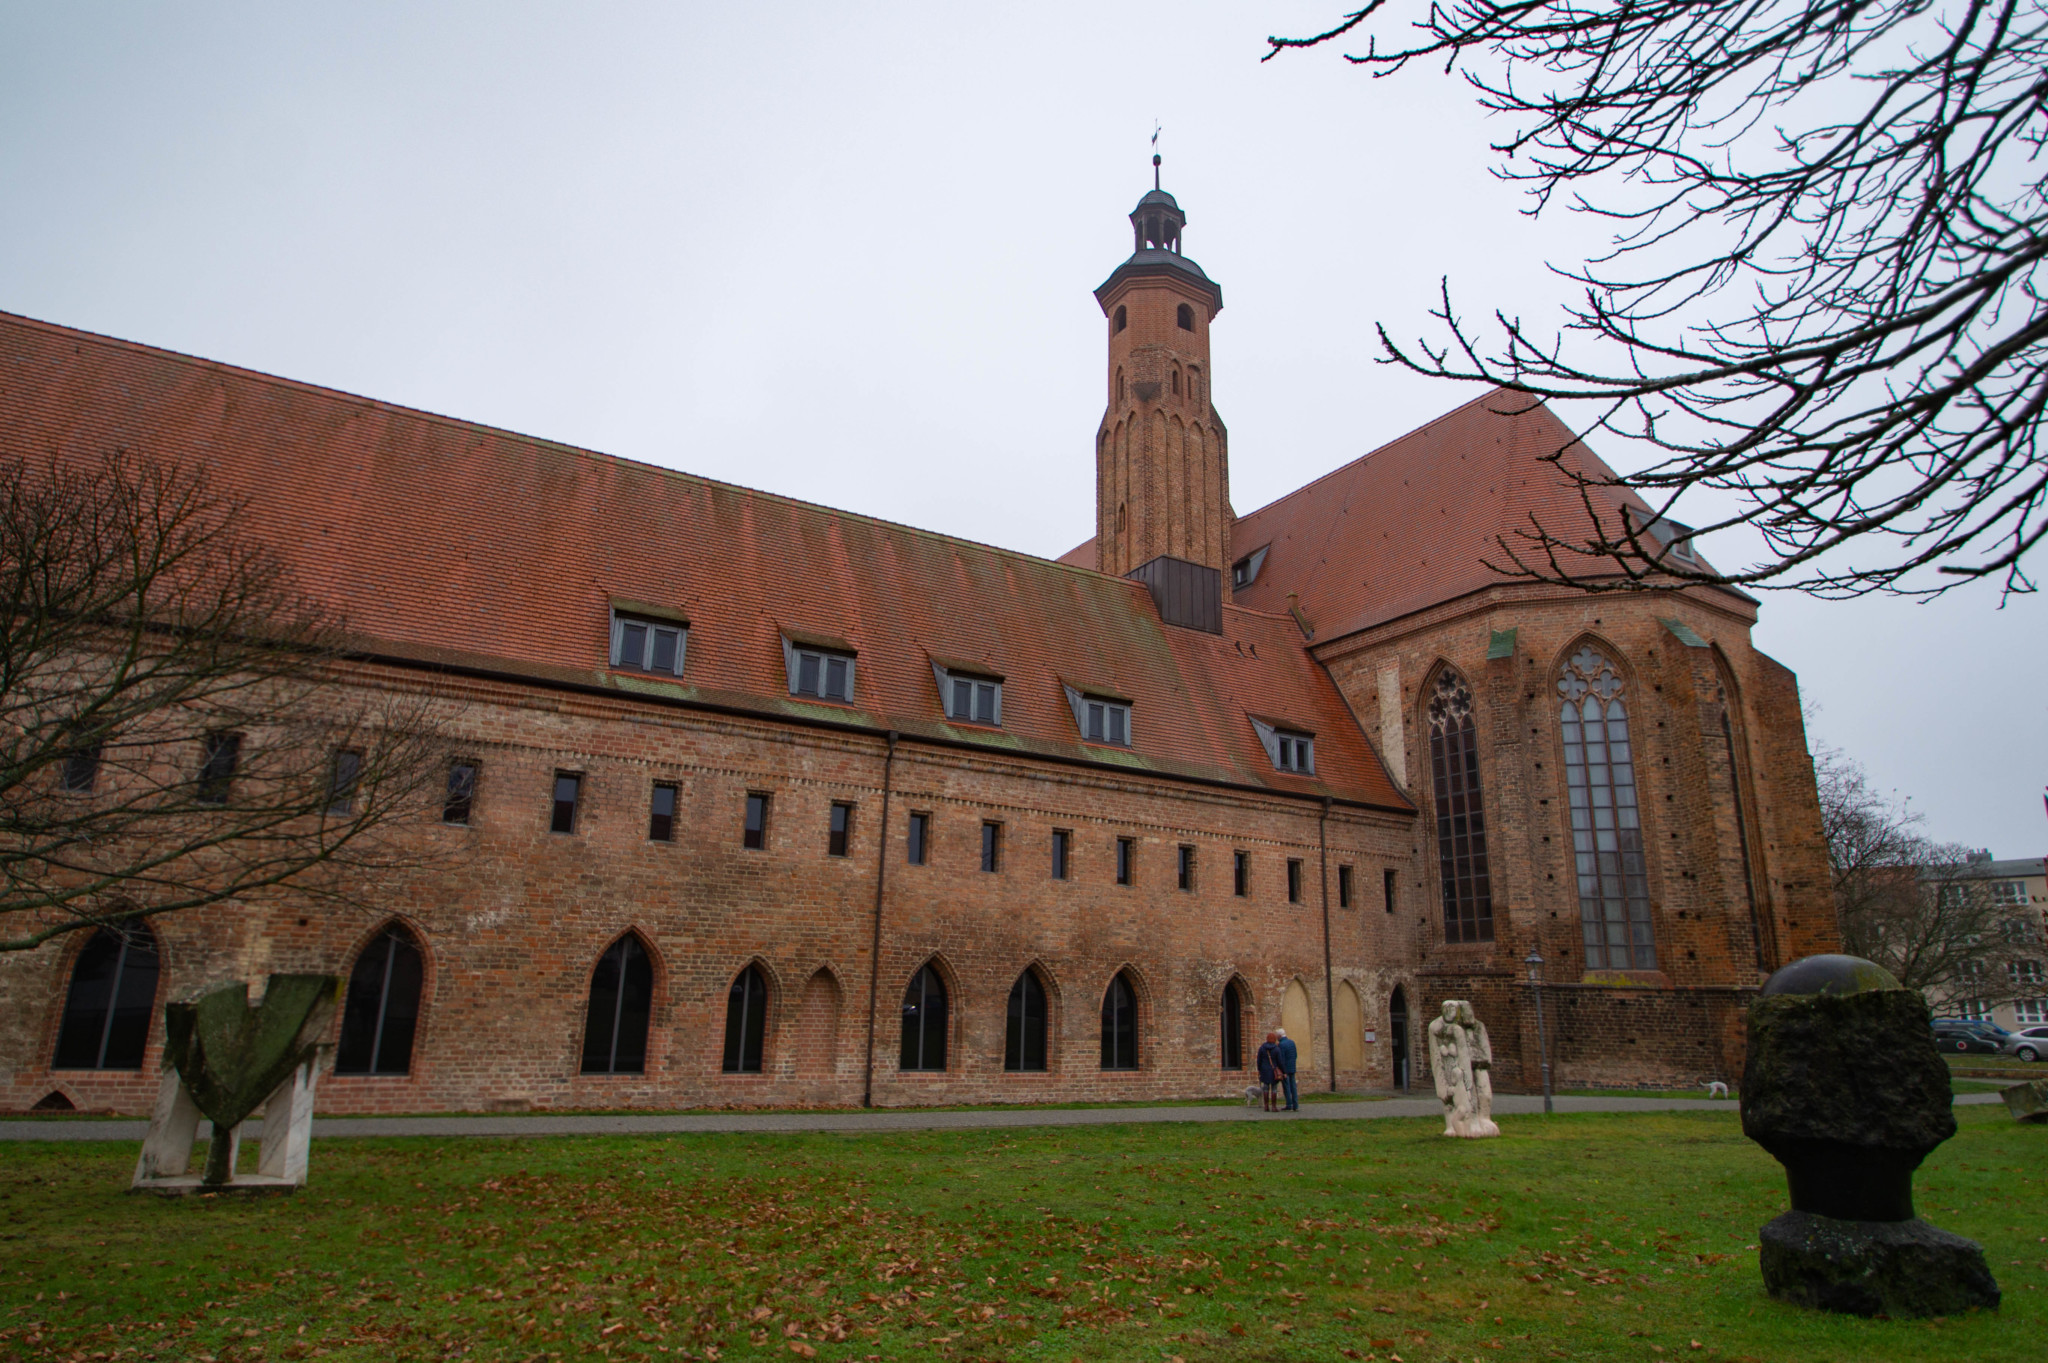 Pauli Kloster in Brandenburg an der Havel